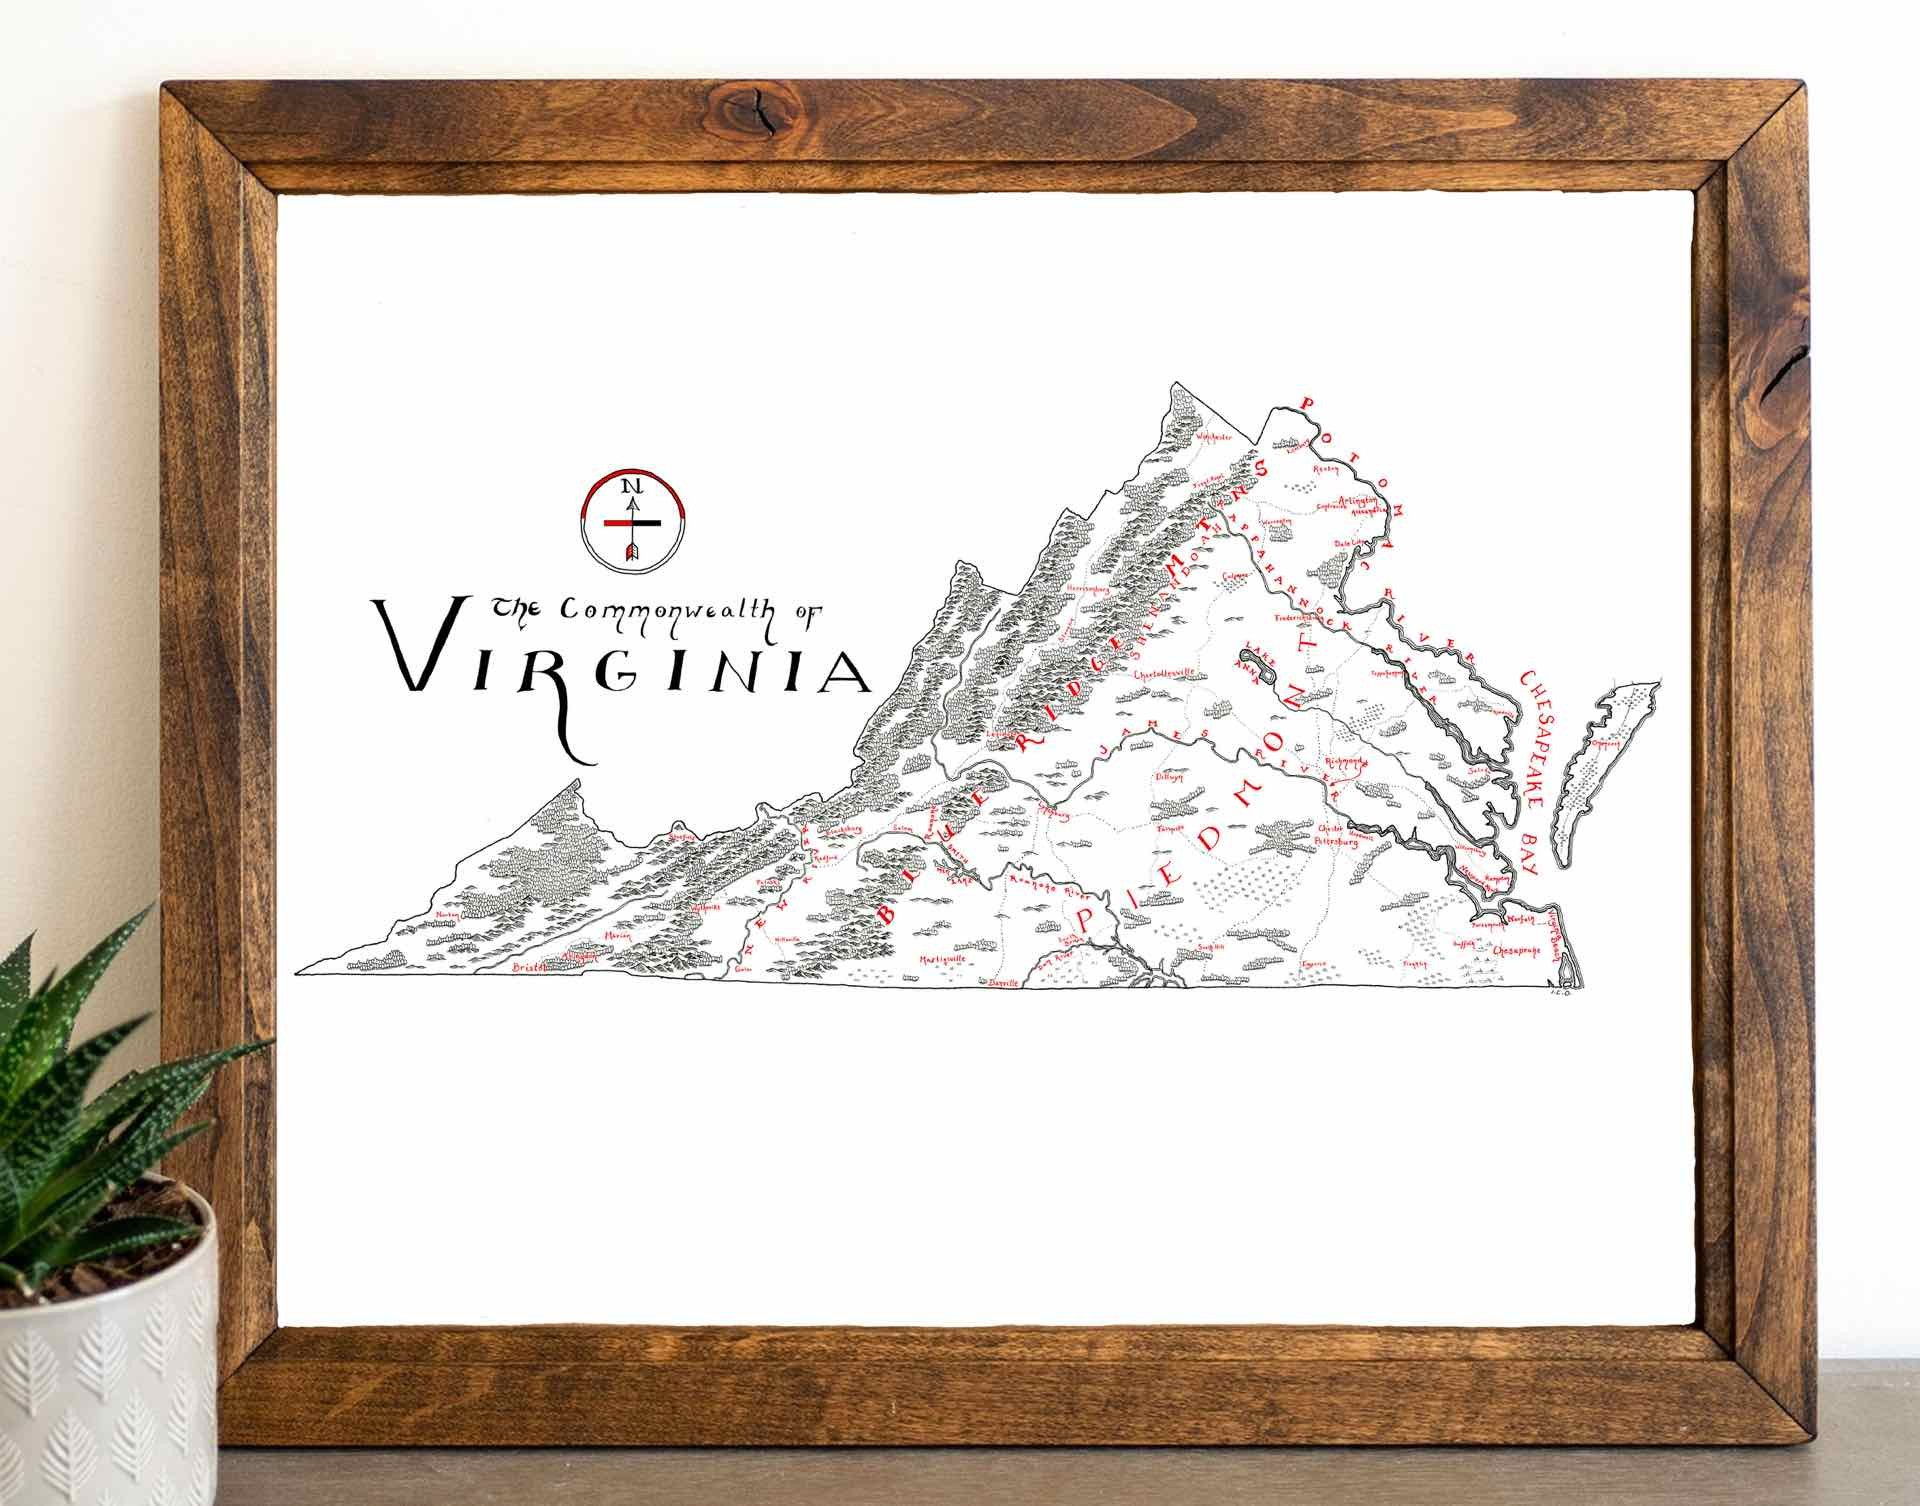 lord-of-maps-fantasy-style-maps-of-real-places-virginia